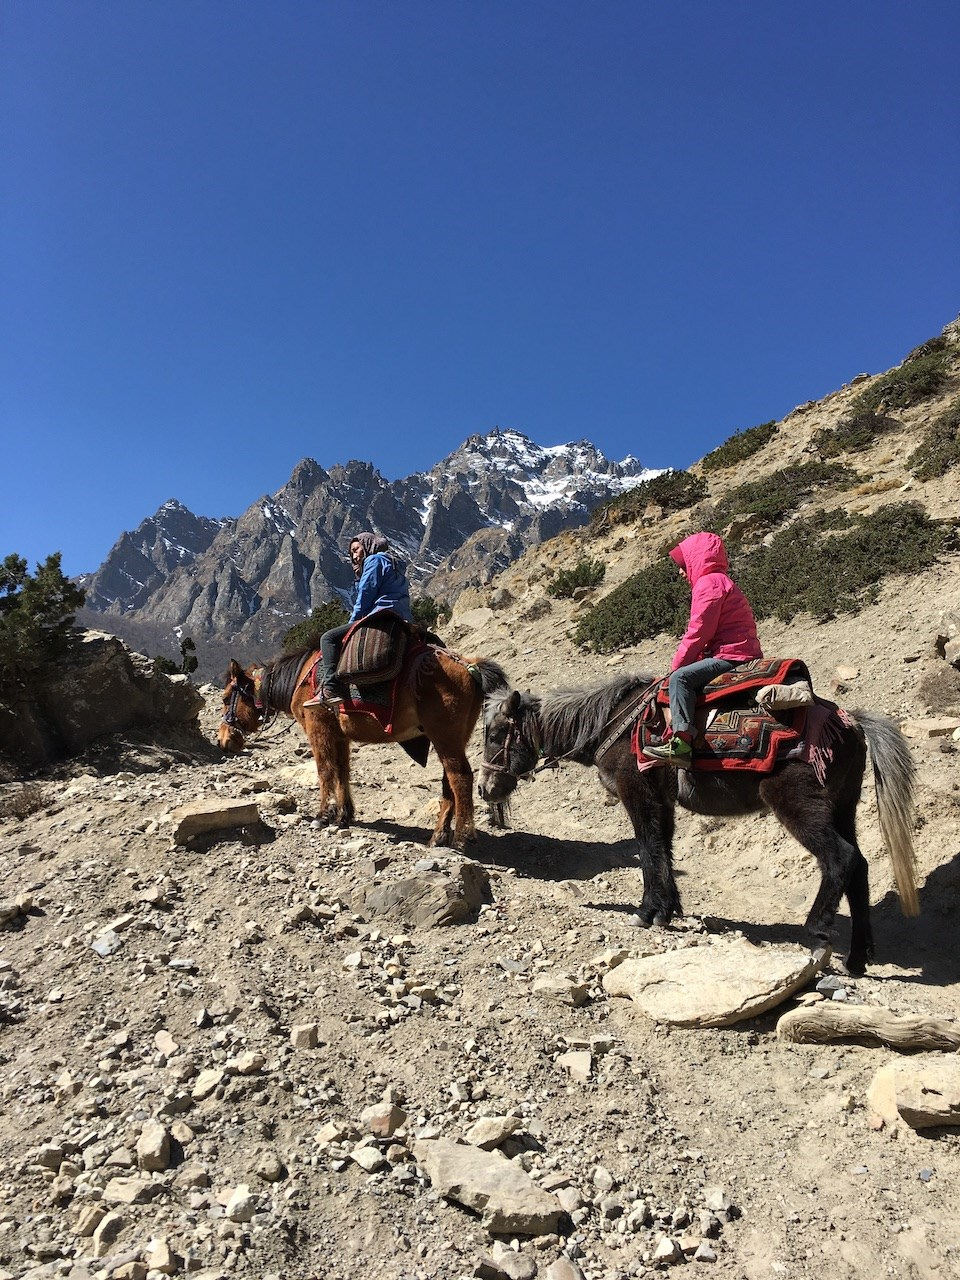 Squamish mountaineer Michael Schauch memoir documents his humanitarian efforts in Nepal